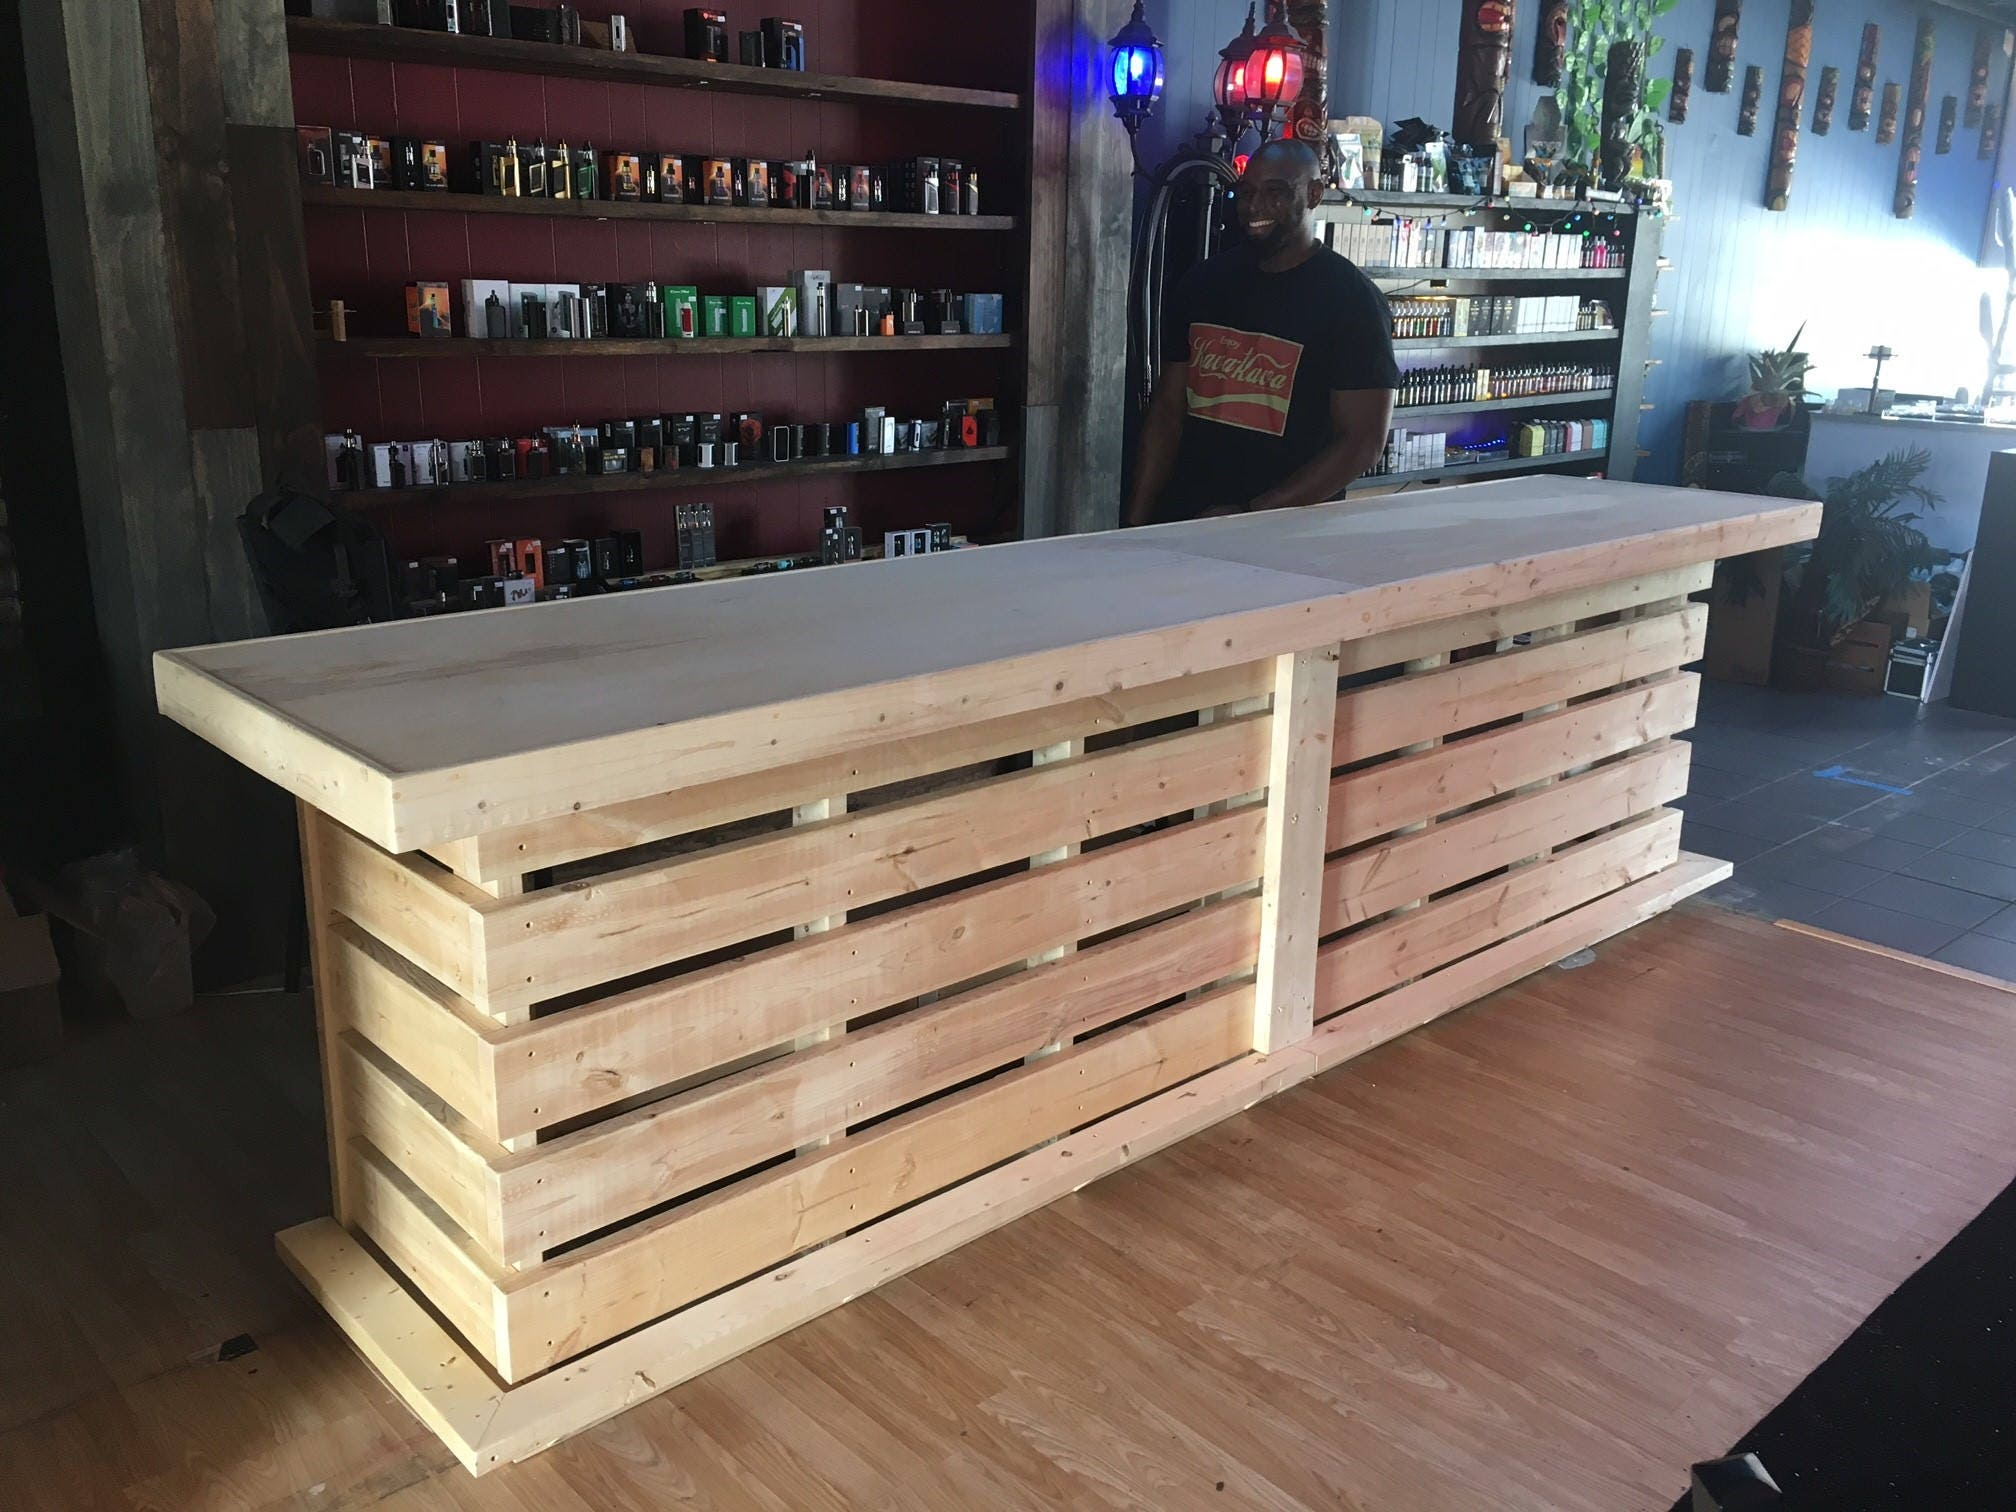 The Whoadie Pallet Style Rustic Dry Bar Reception Desk Or